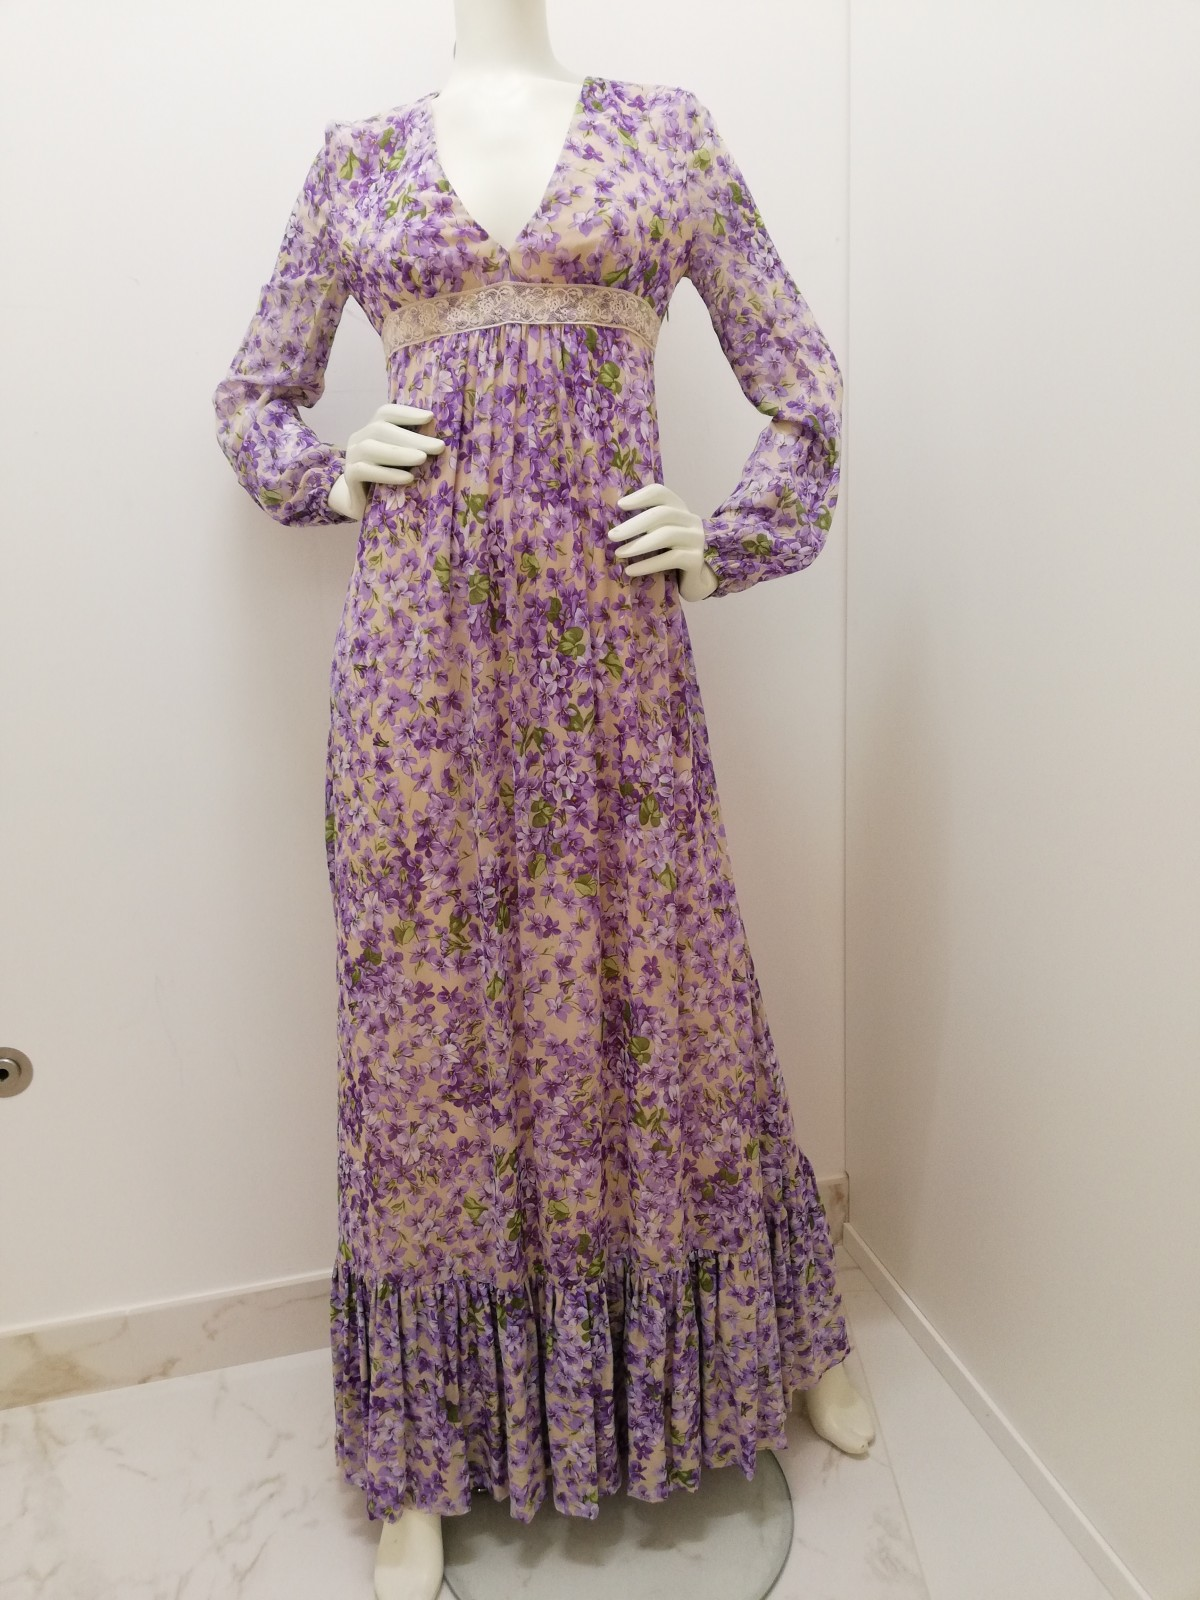 new style 0da2d ea2f1 Long dress 100% pl Print violets. Long sleeve. twin set